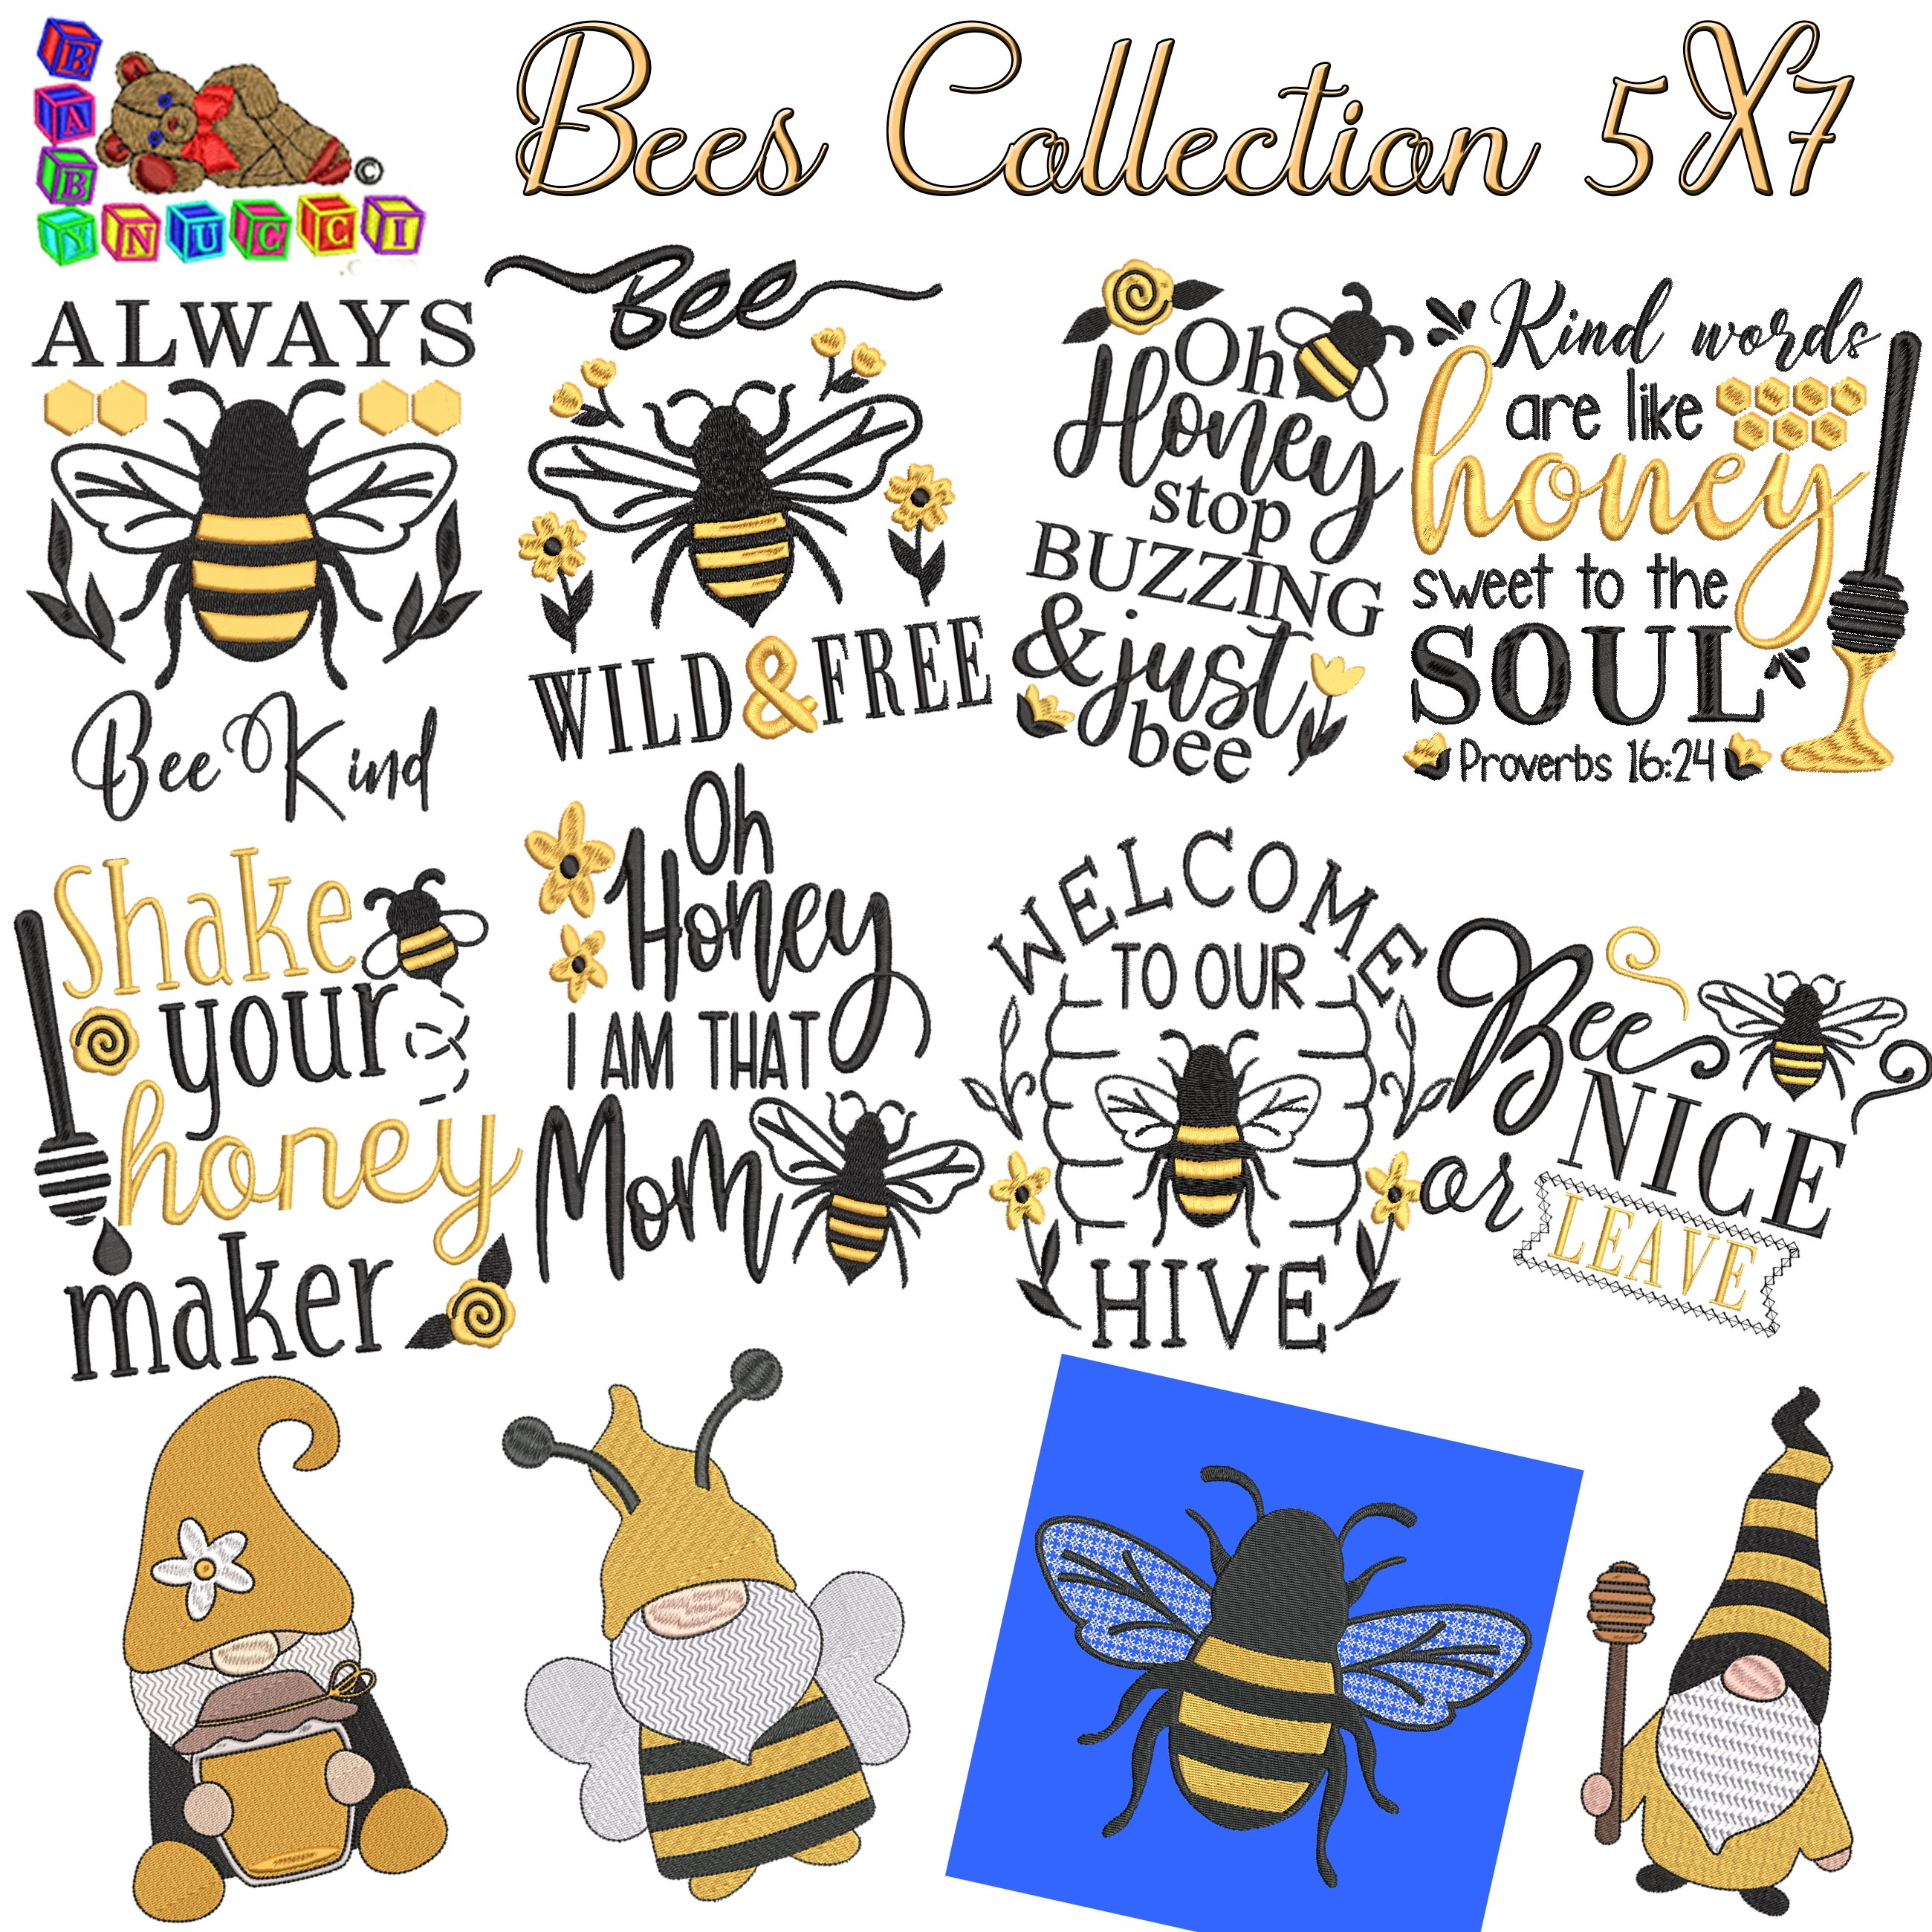 Bees Collection 5X7